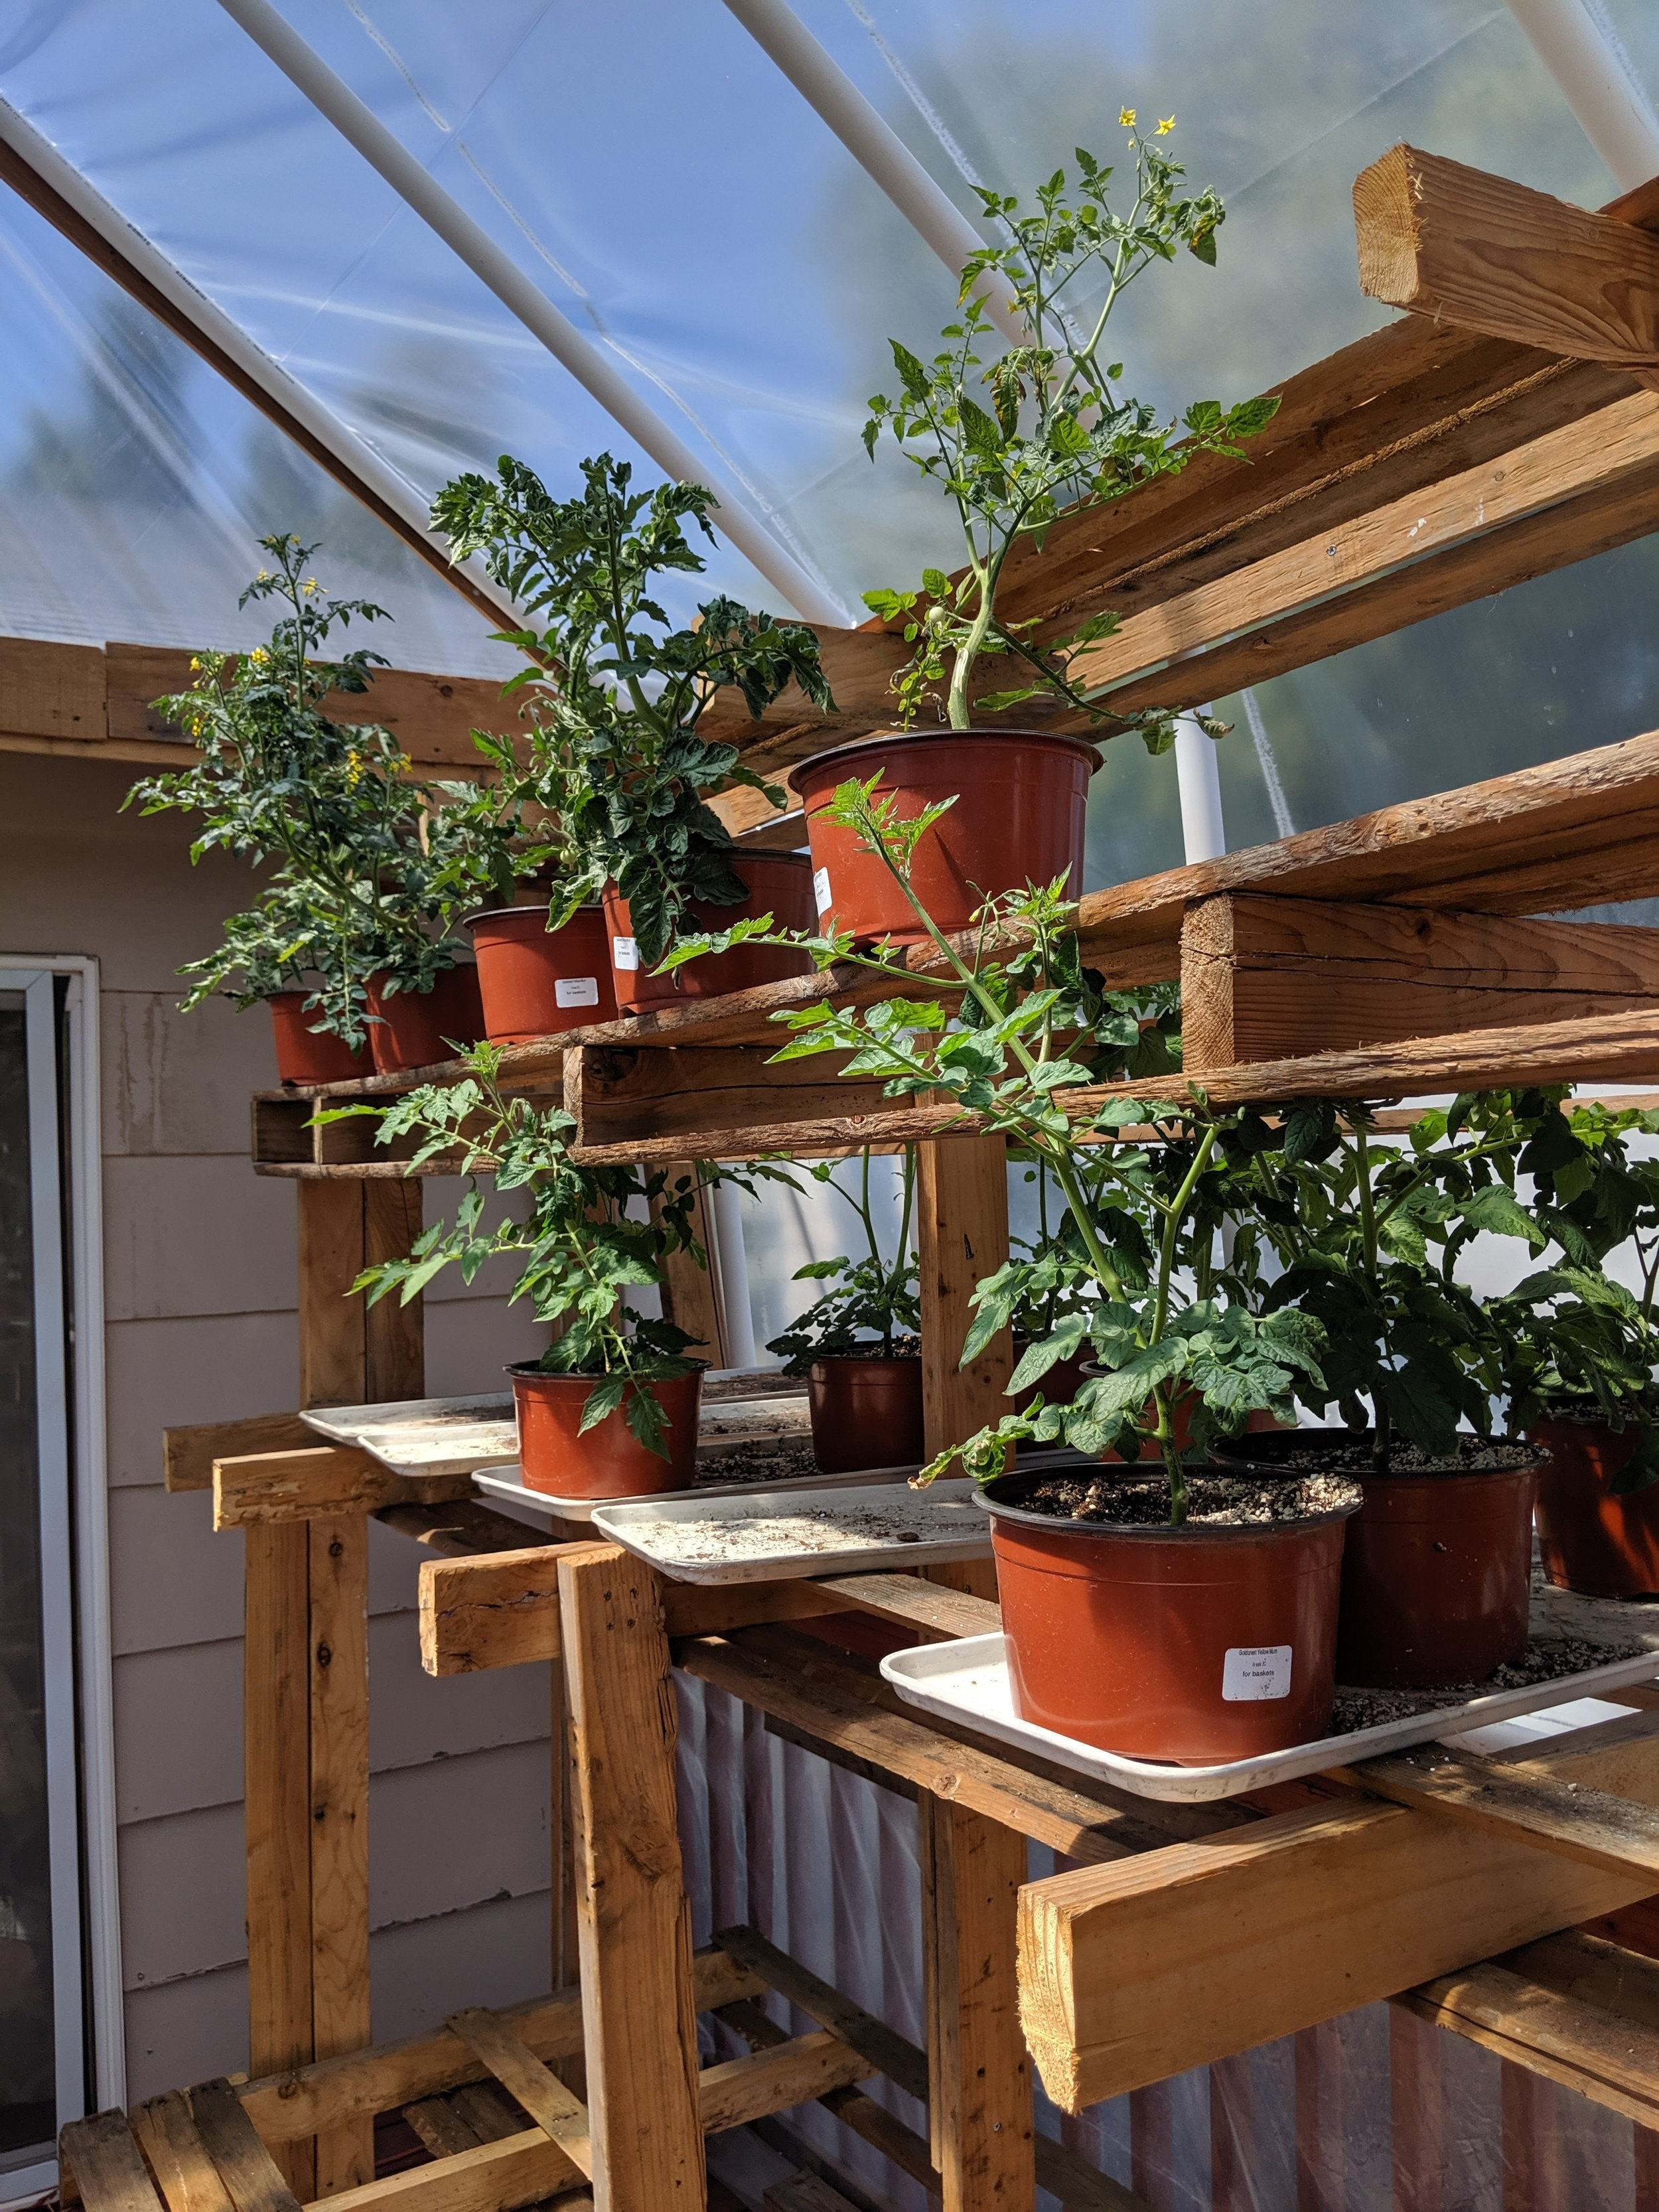 Inside the greenhouse, these tomatoes are all propagated from branches of other tomato plants.